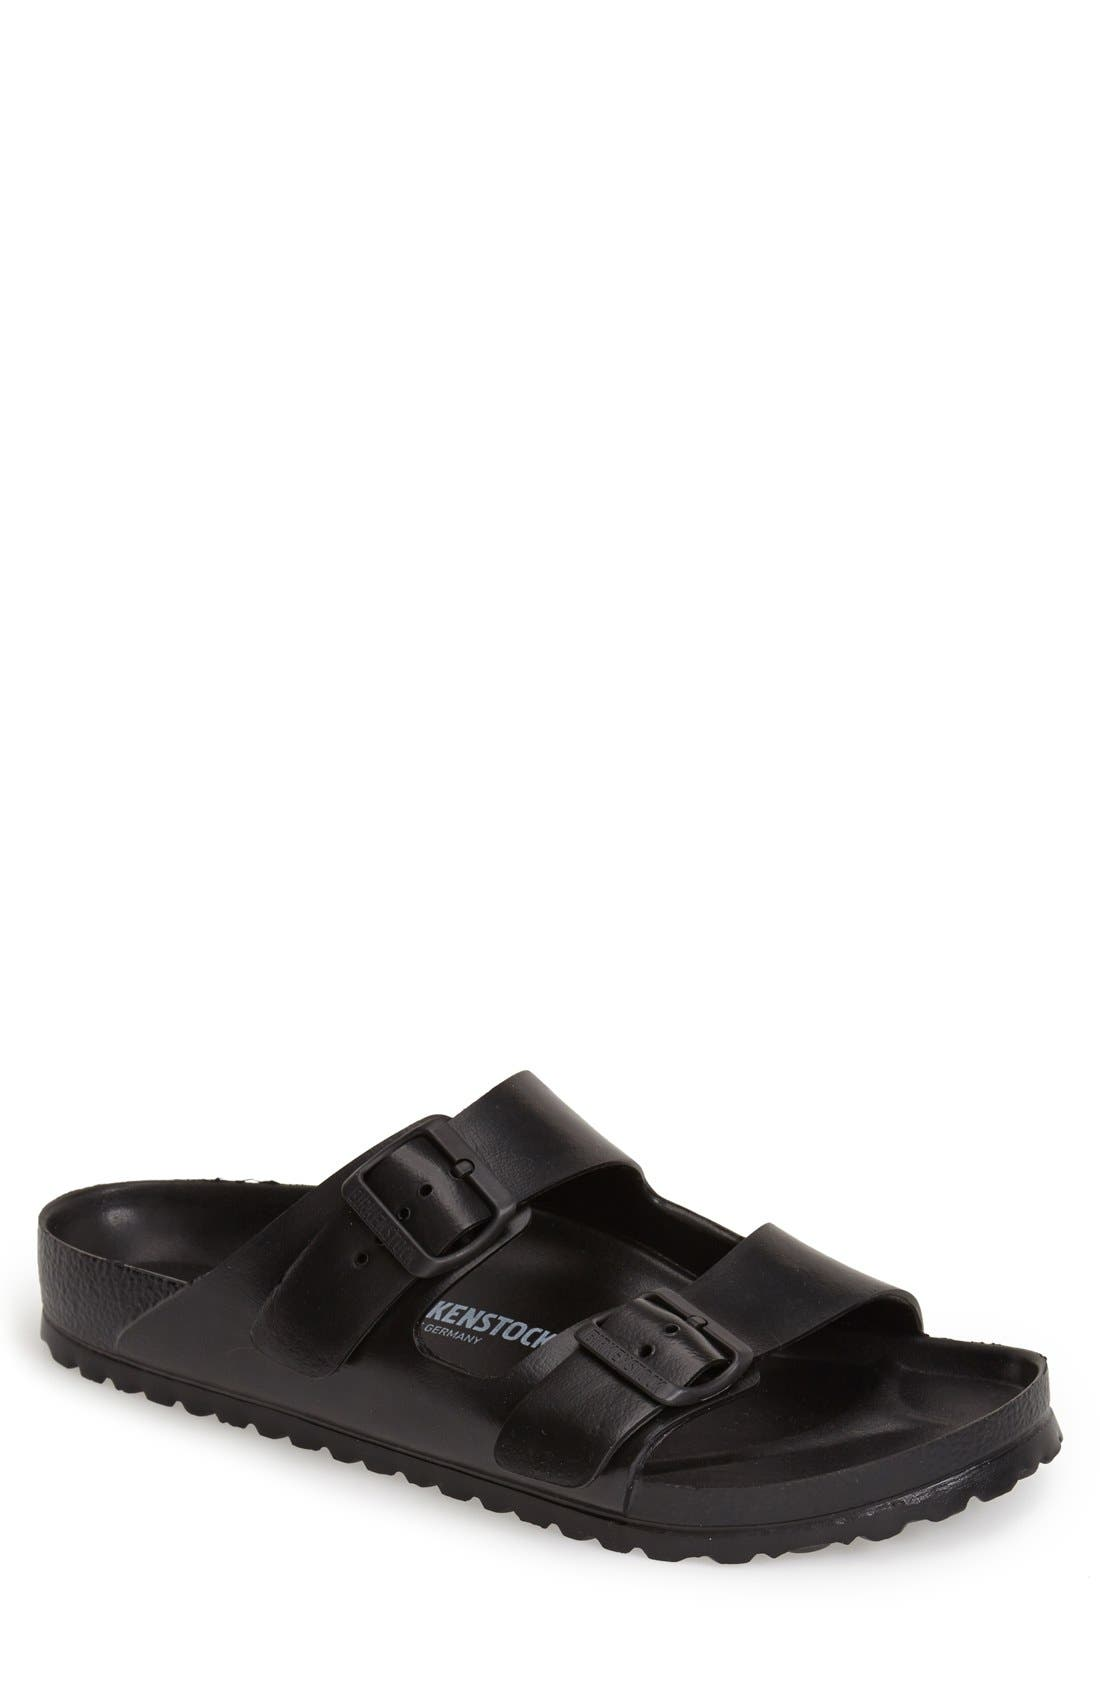 Image of Birkenstock Arizona Waterproof Classic Footbed Sandal - Discontinued